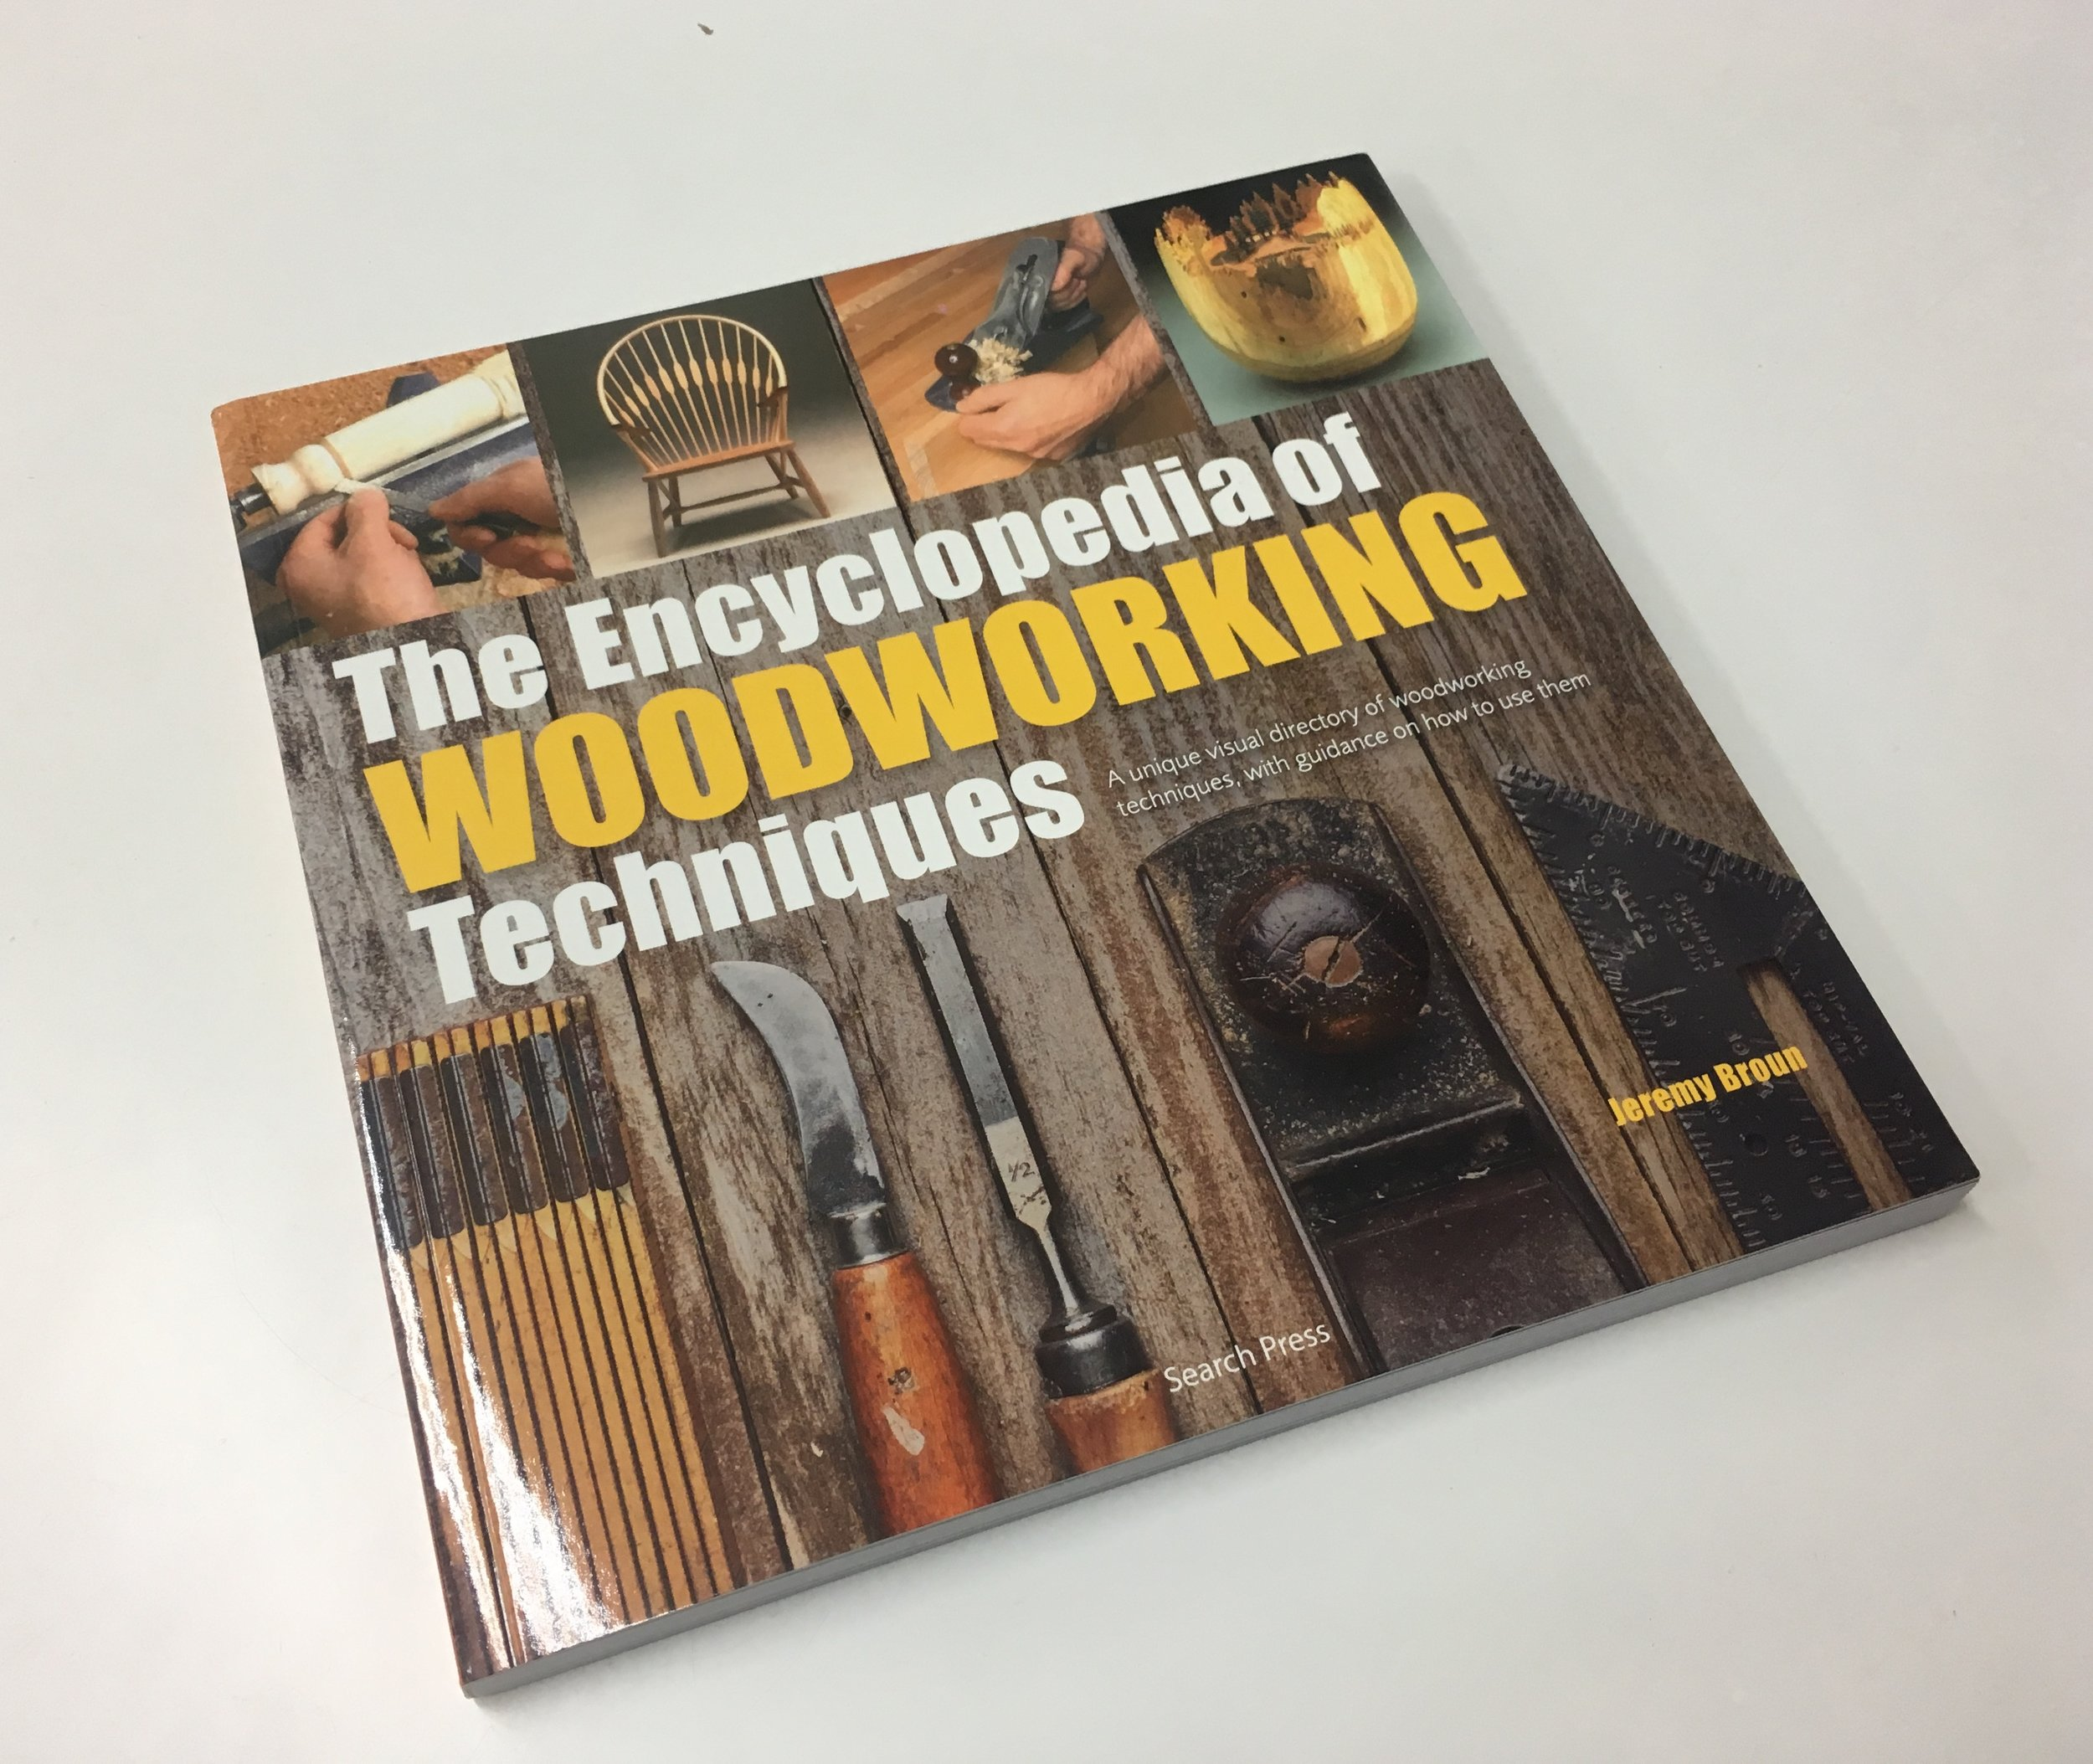 Furniture designer maker Namon Gaston featured in Furniture making book